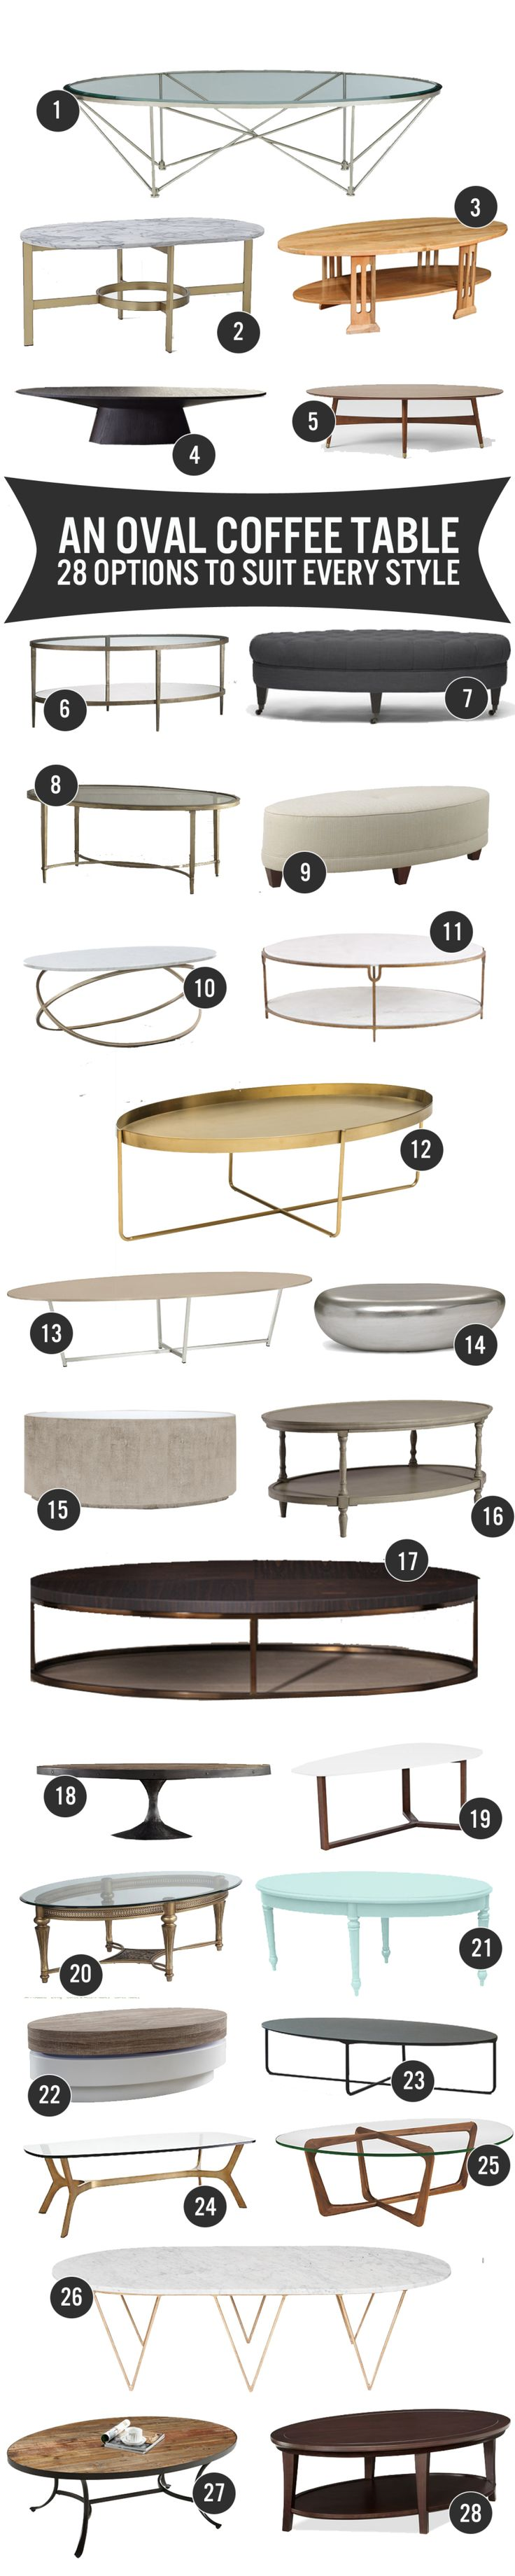 28 Oval Coffee Tables To Suit Any Style | www.theanatomyofdesign.com